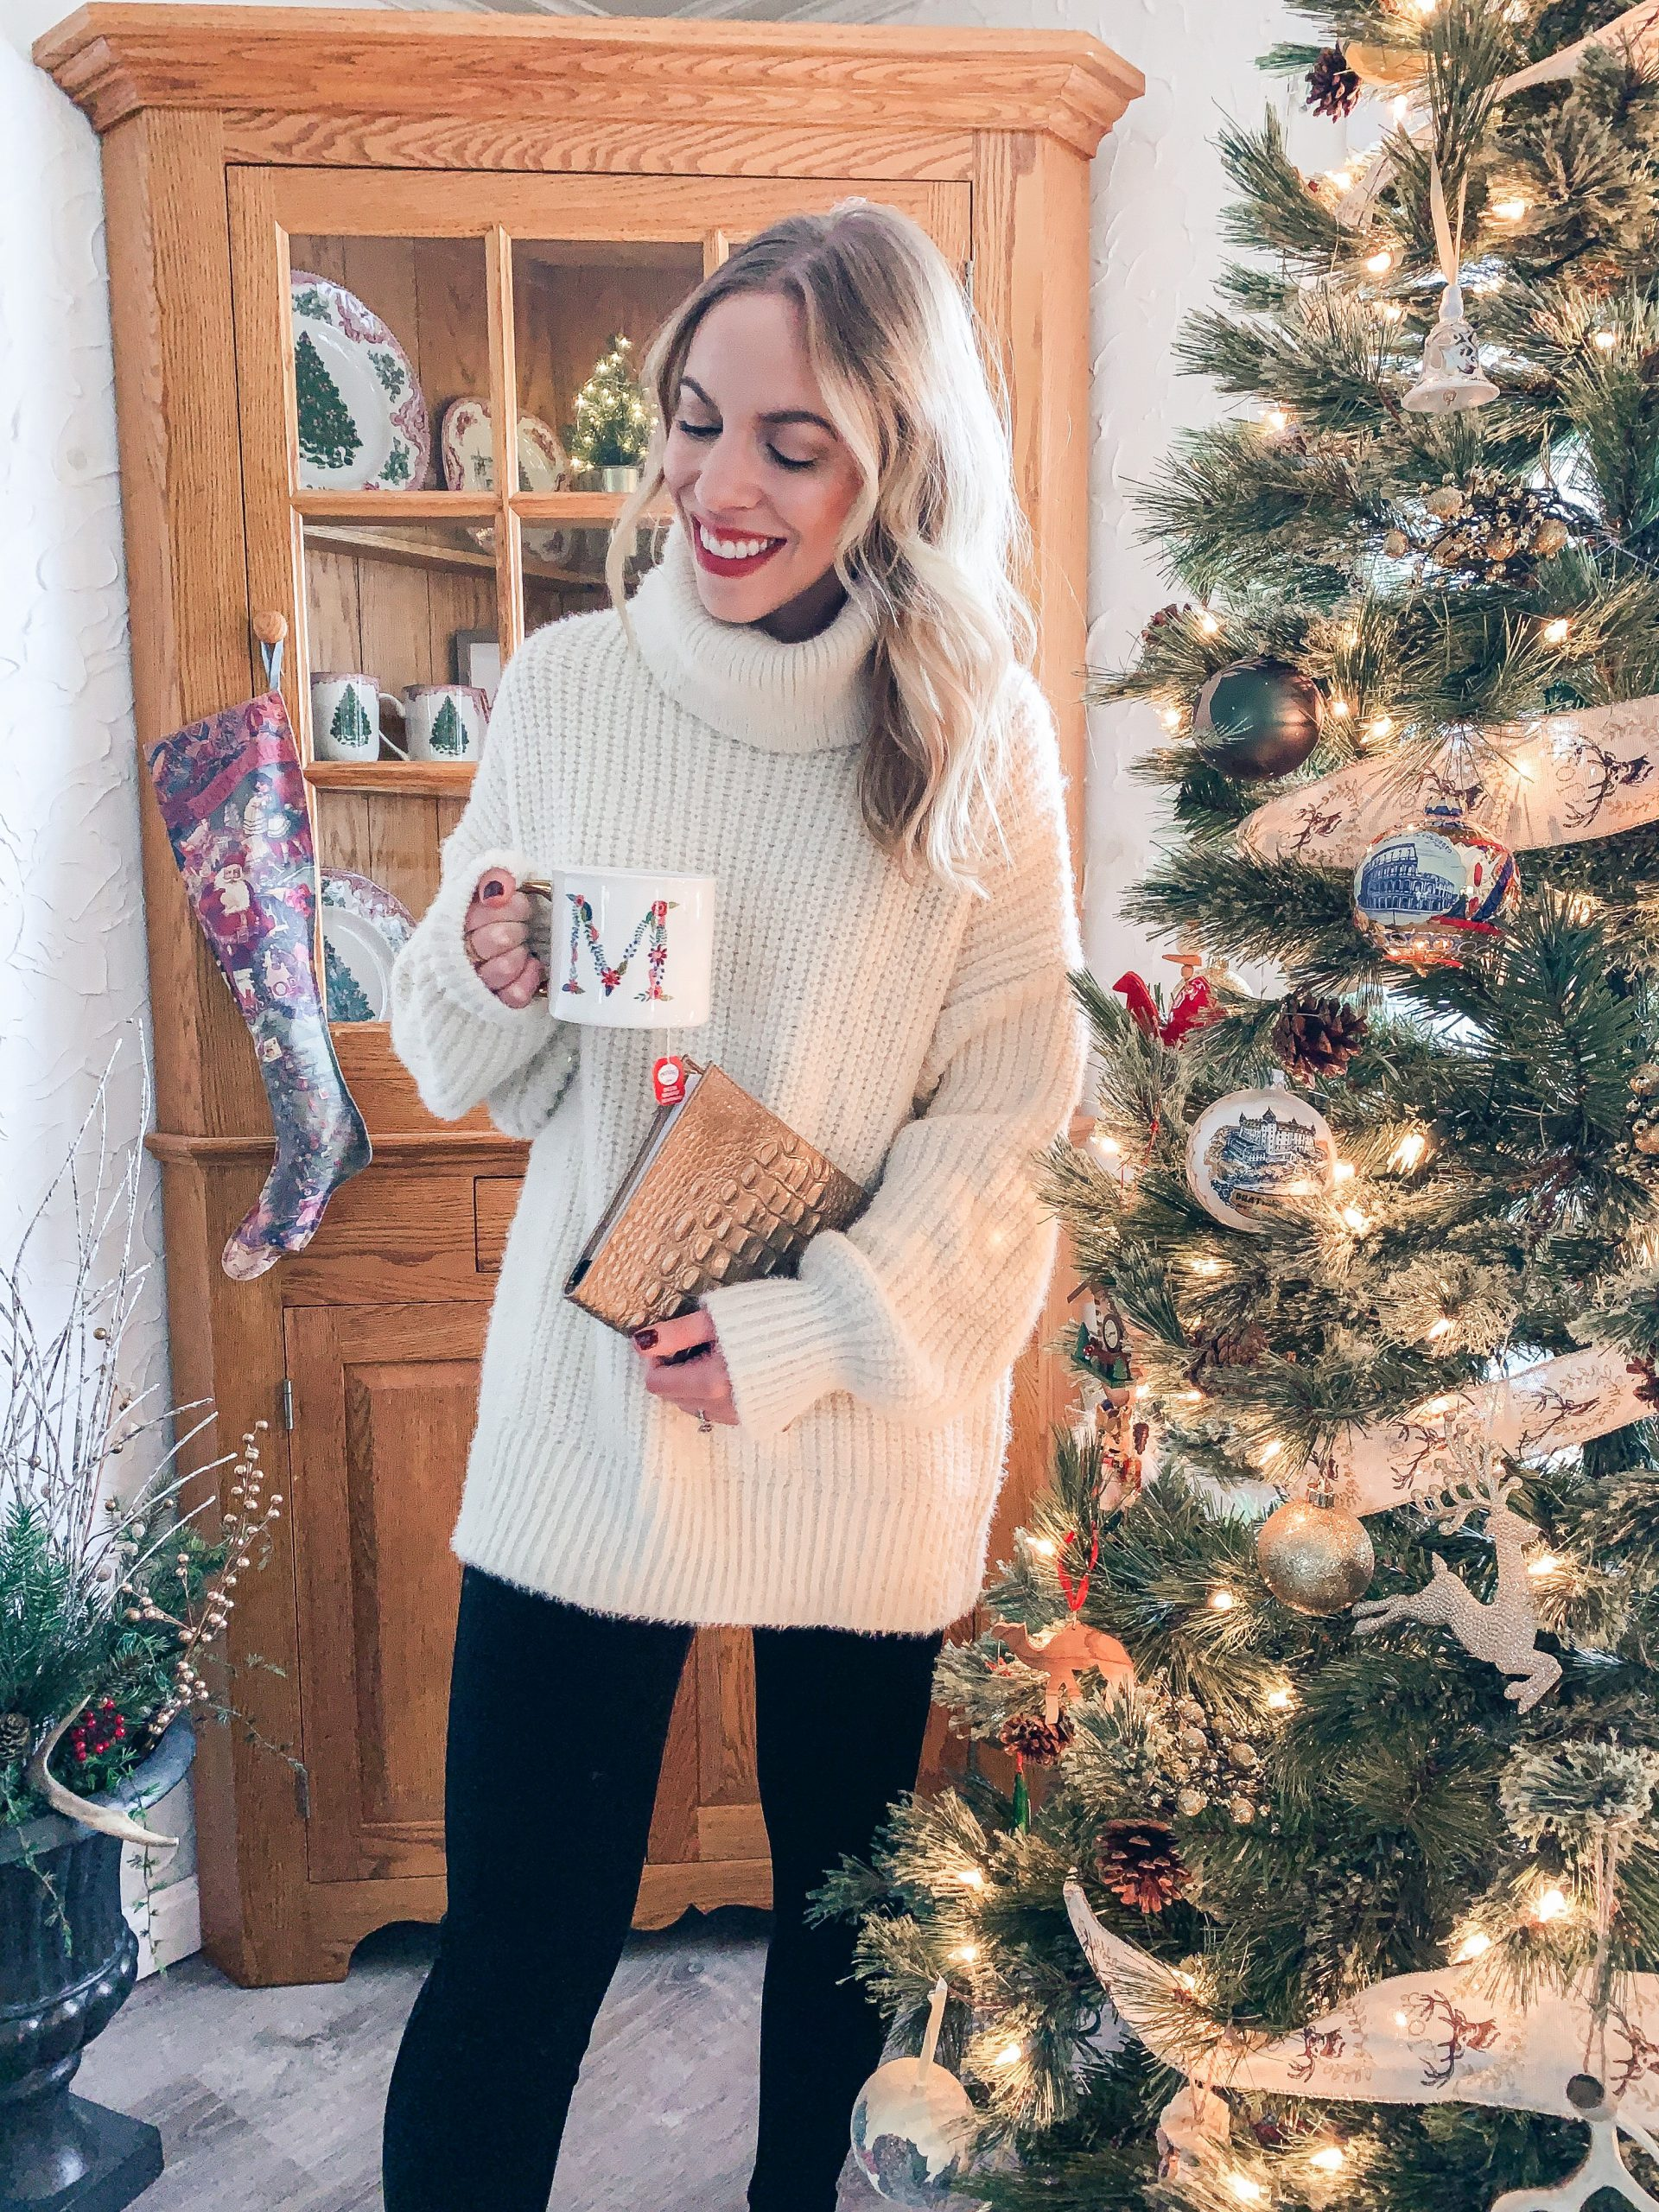 Meagan Brandon fashion blogger of Meagan's Moda shares best ways to shop Black Friday sales and how to find the best deals